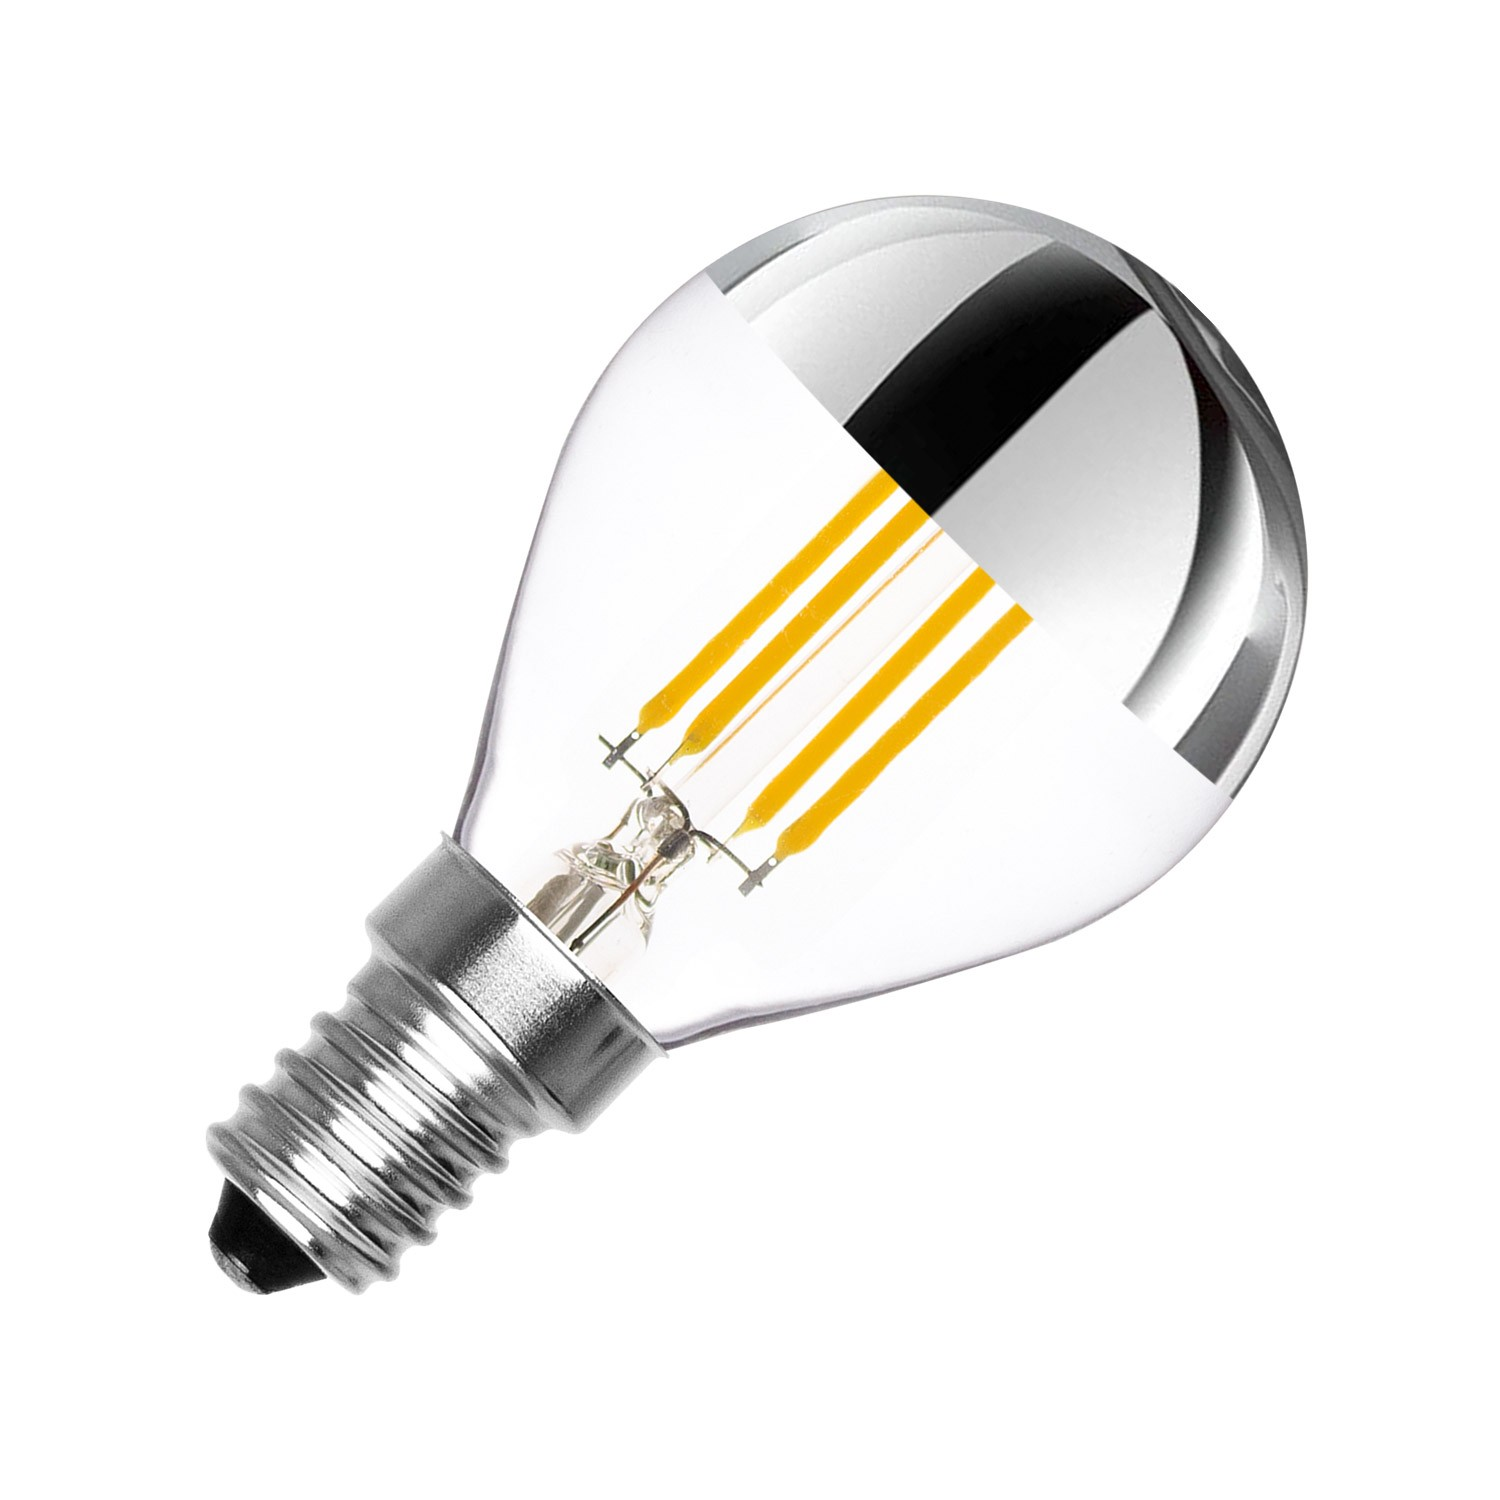 Led Birnen E14 Led Lampe E14 Dimmbar Filament Reflect G45 3 5w